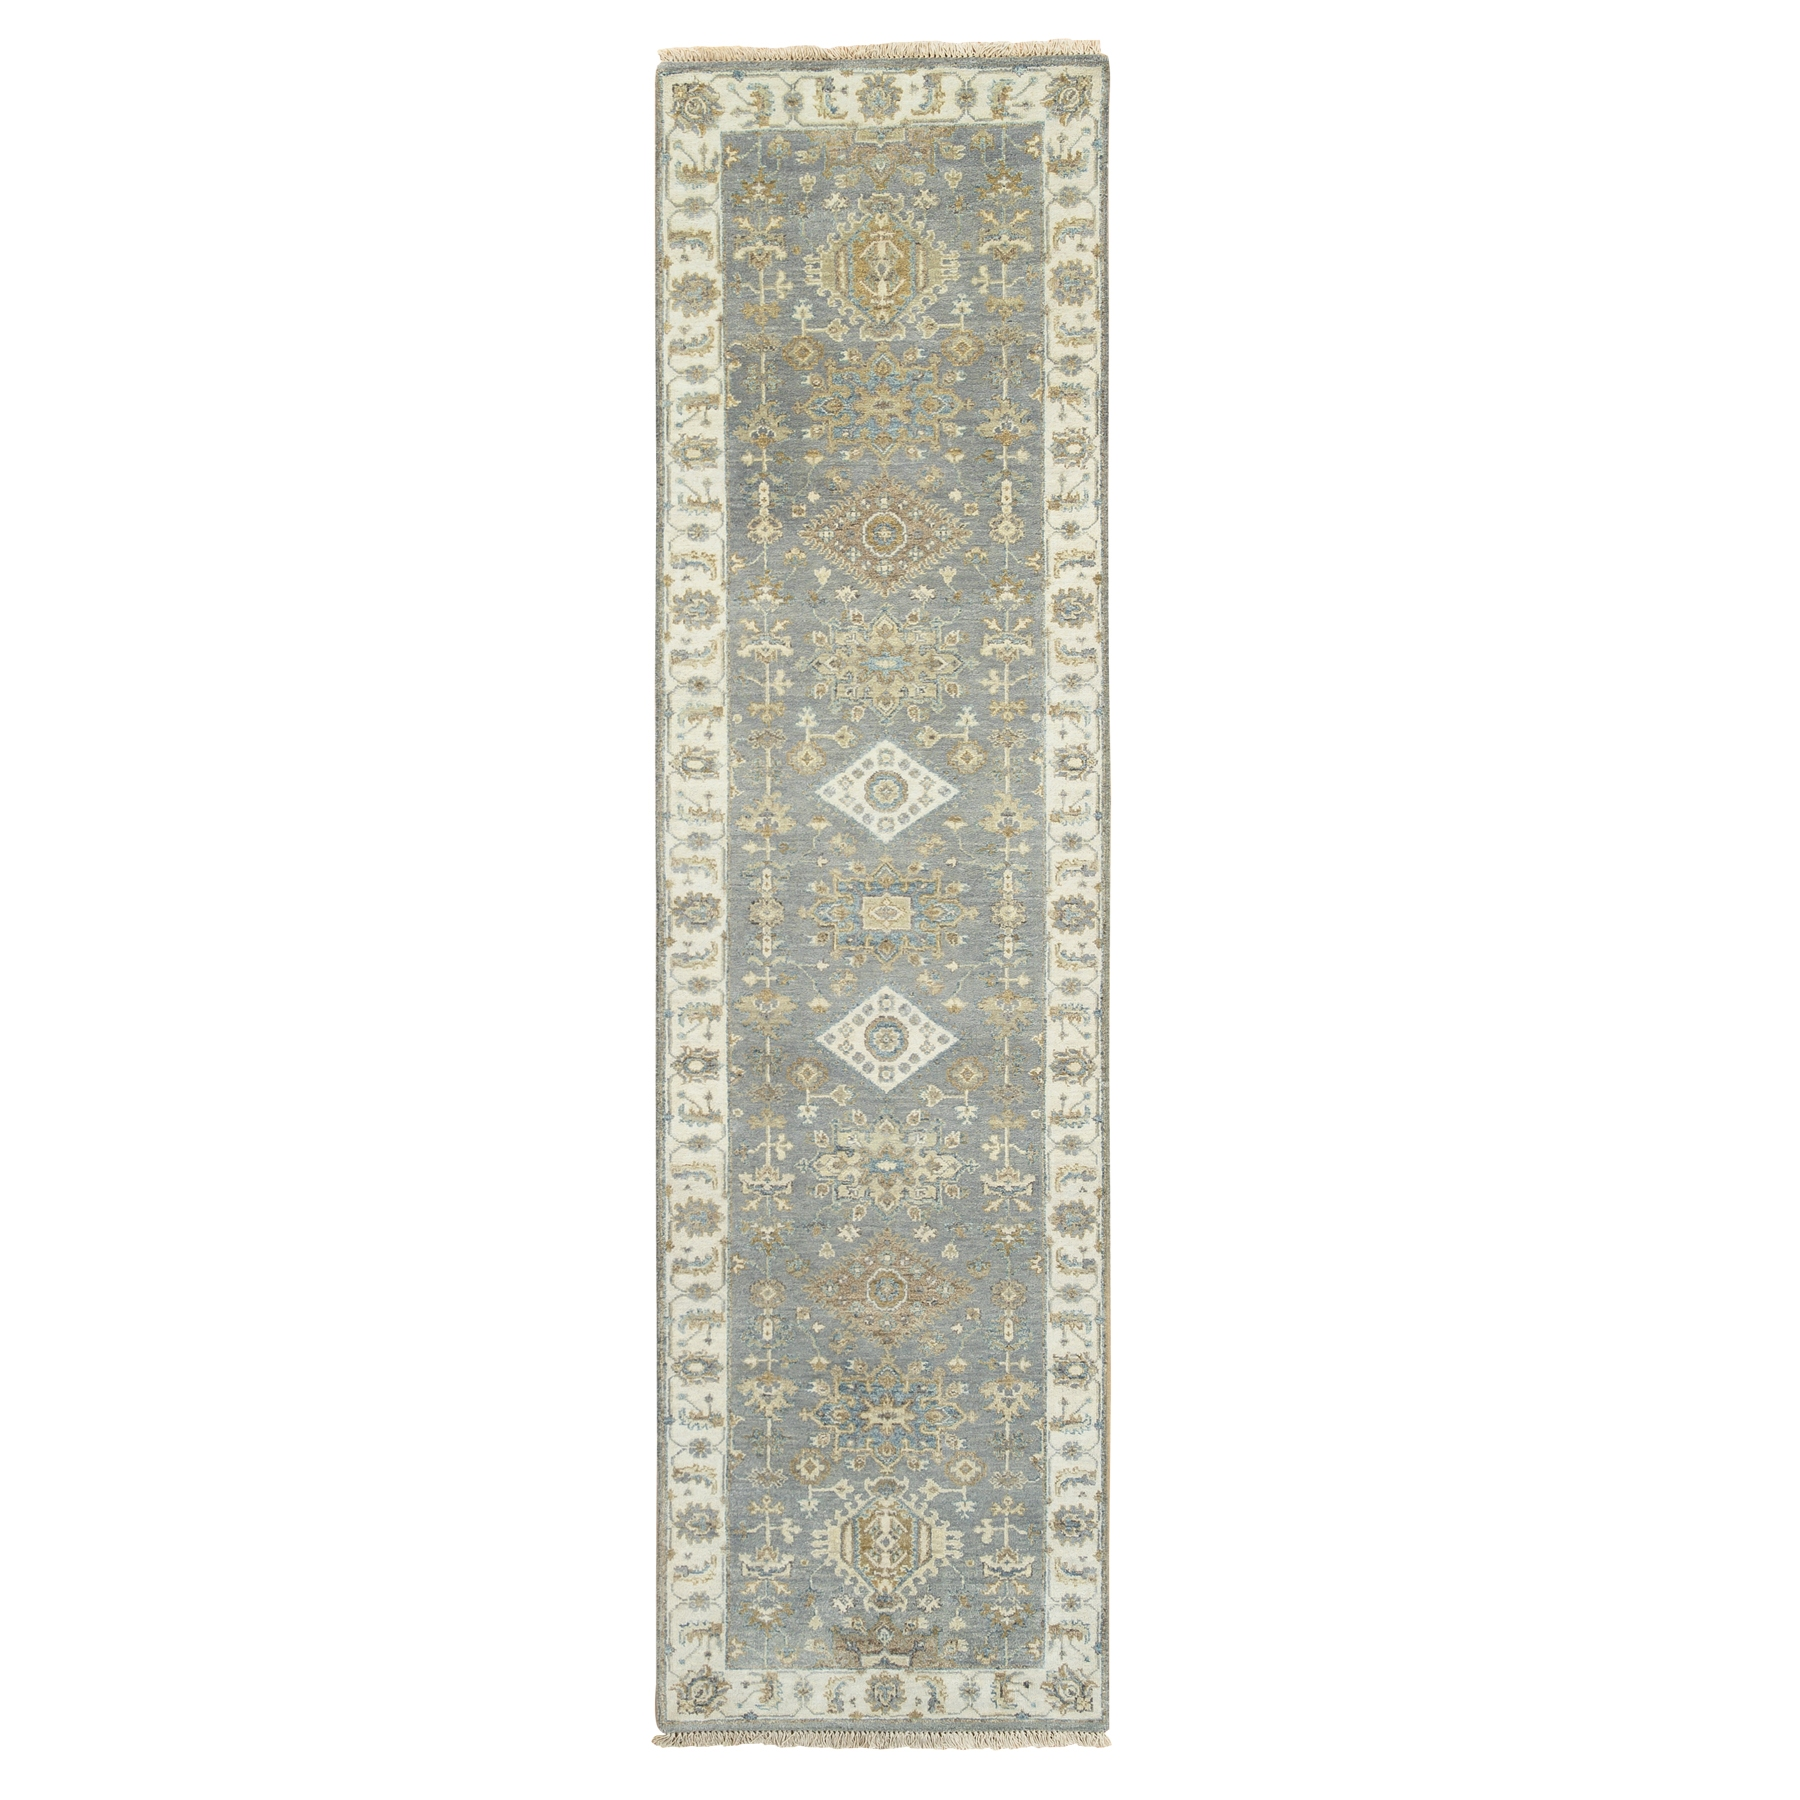 "2'7""x9'10"" Gray Karajeh Design Pure Wool Hand Knotted Oriental Runner Rug"